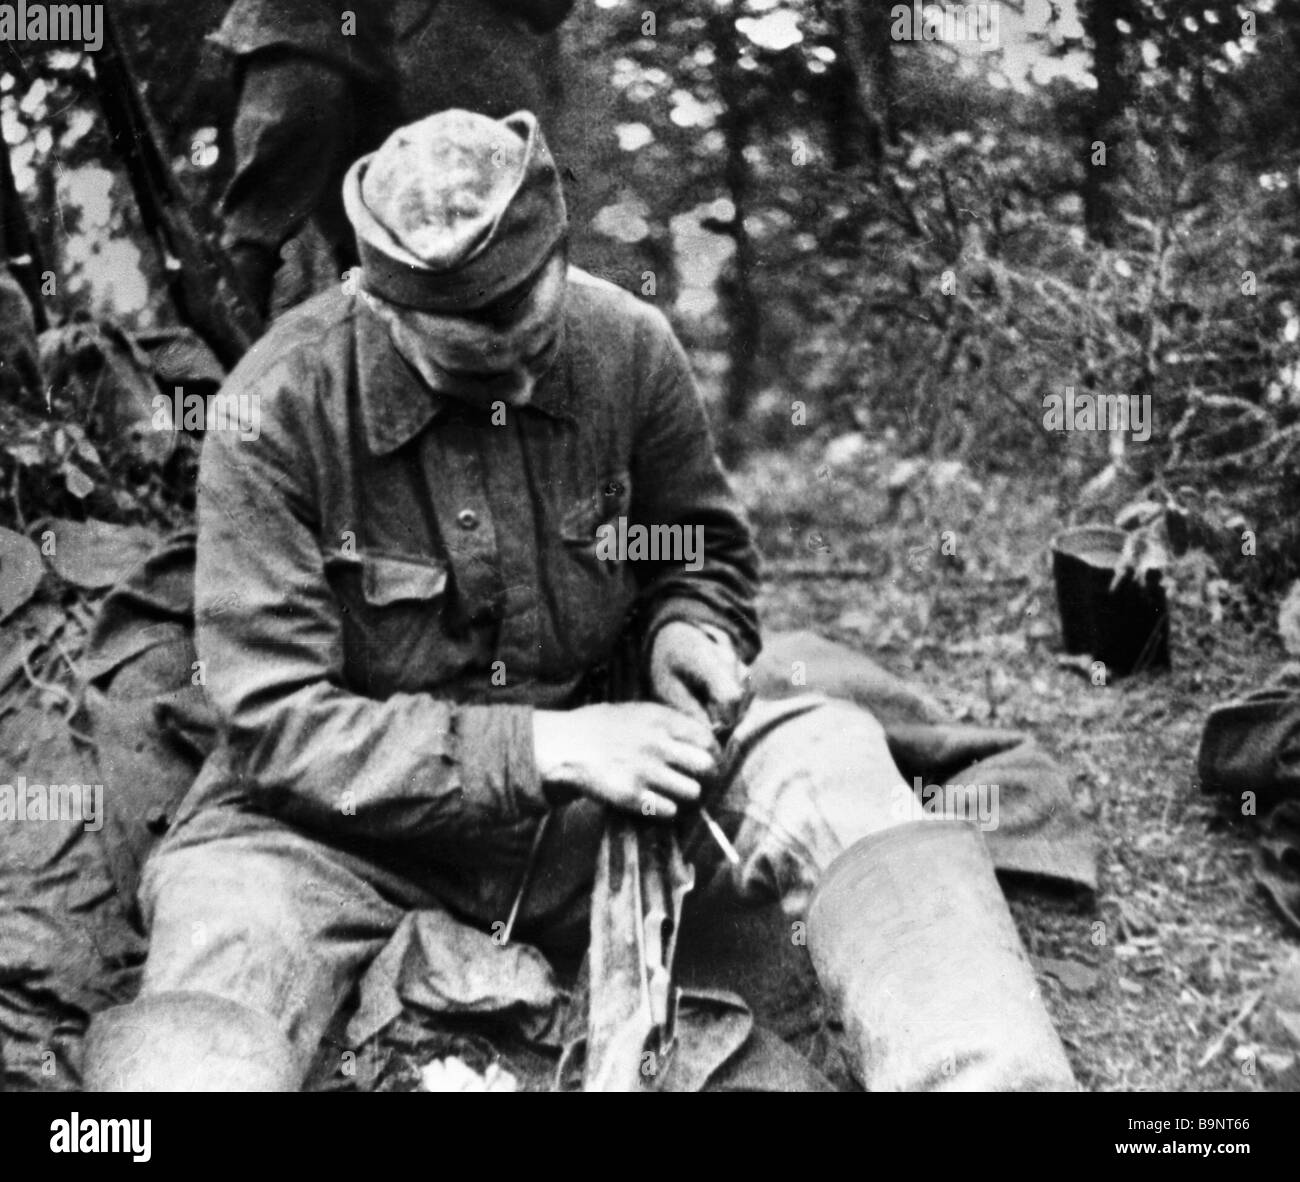 A Red Army soldier halts during the 1941 1945 Great Patriotic War - Stock Image